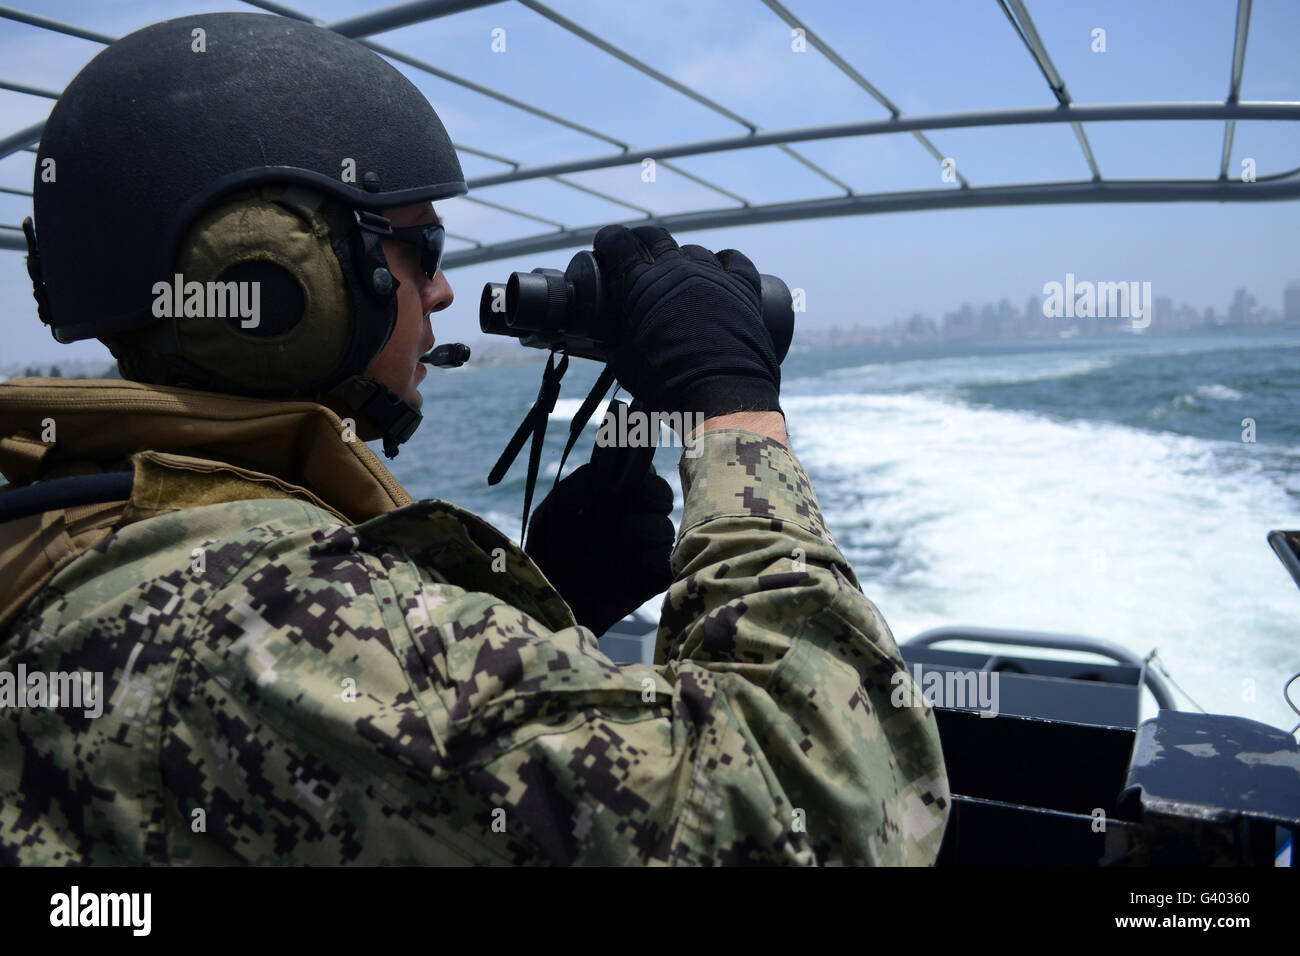 Soldier searches for surface contacts while patrolling San Diego Bay. - Stock Image